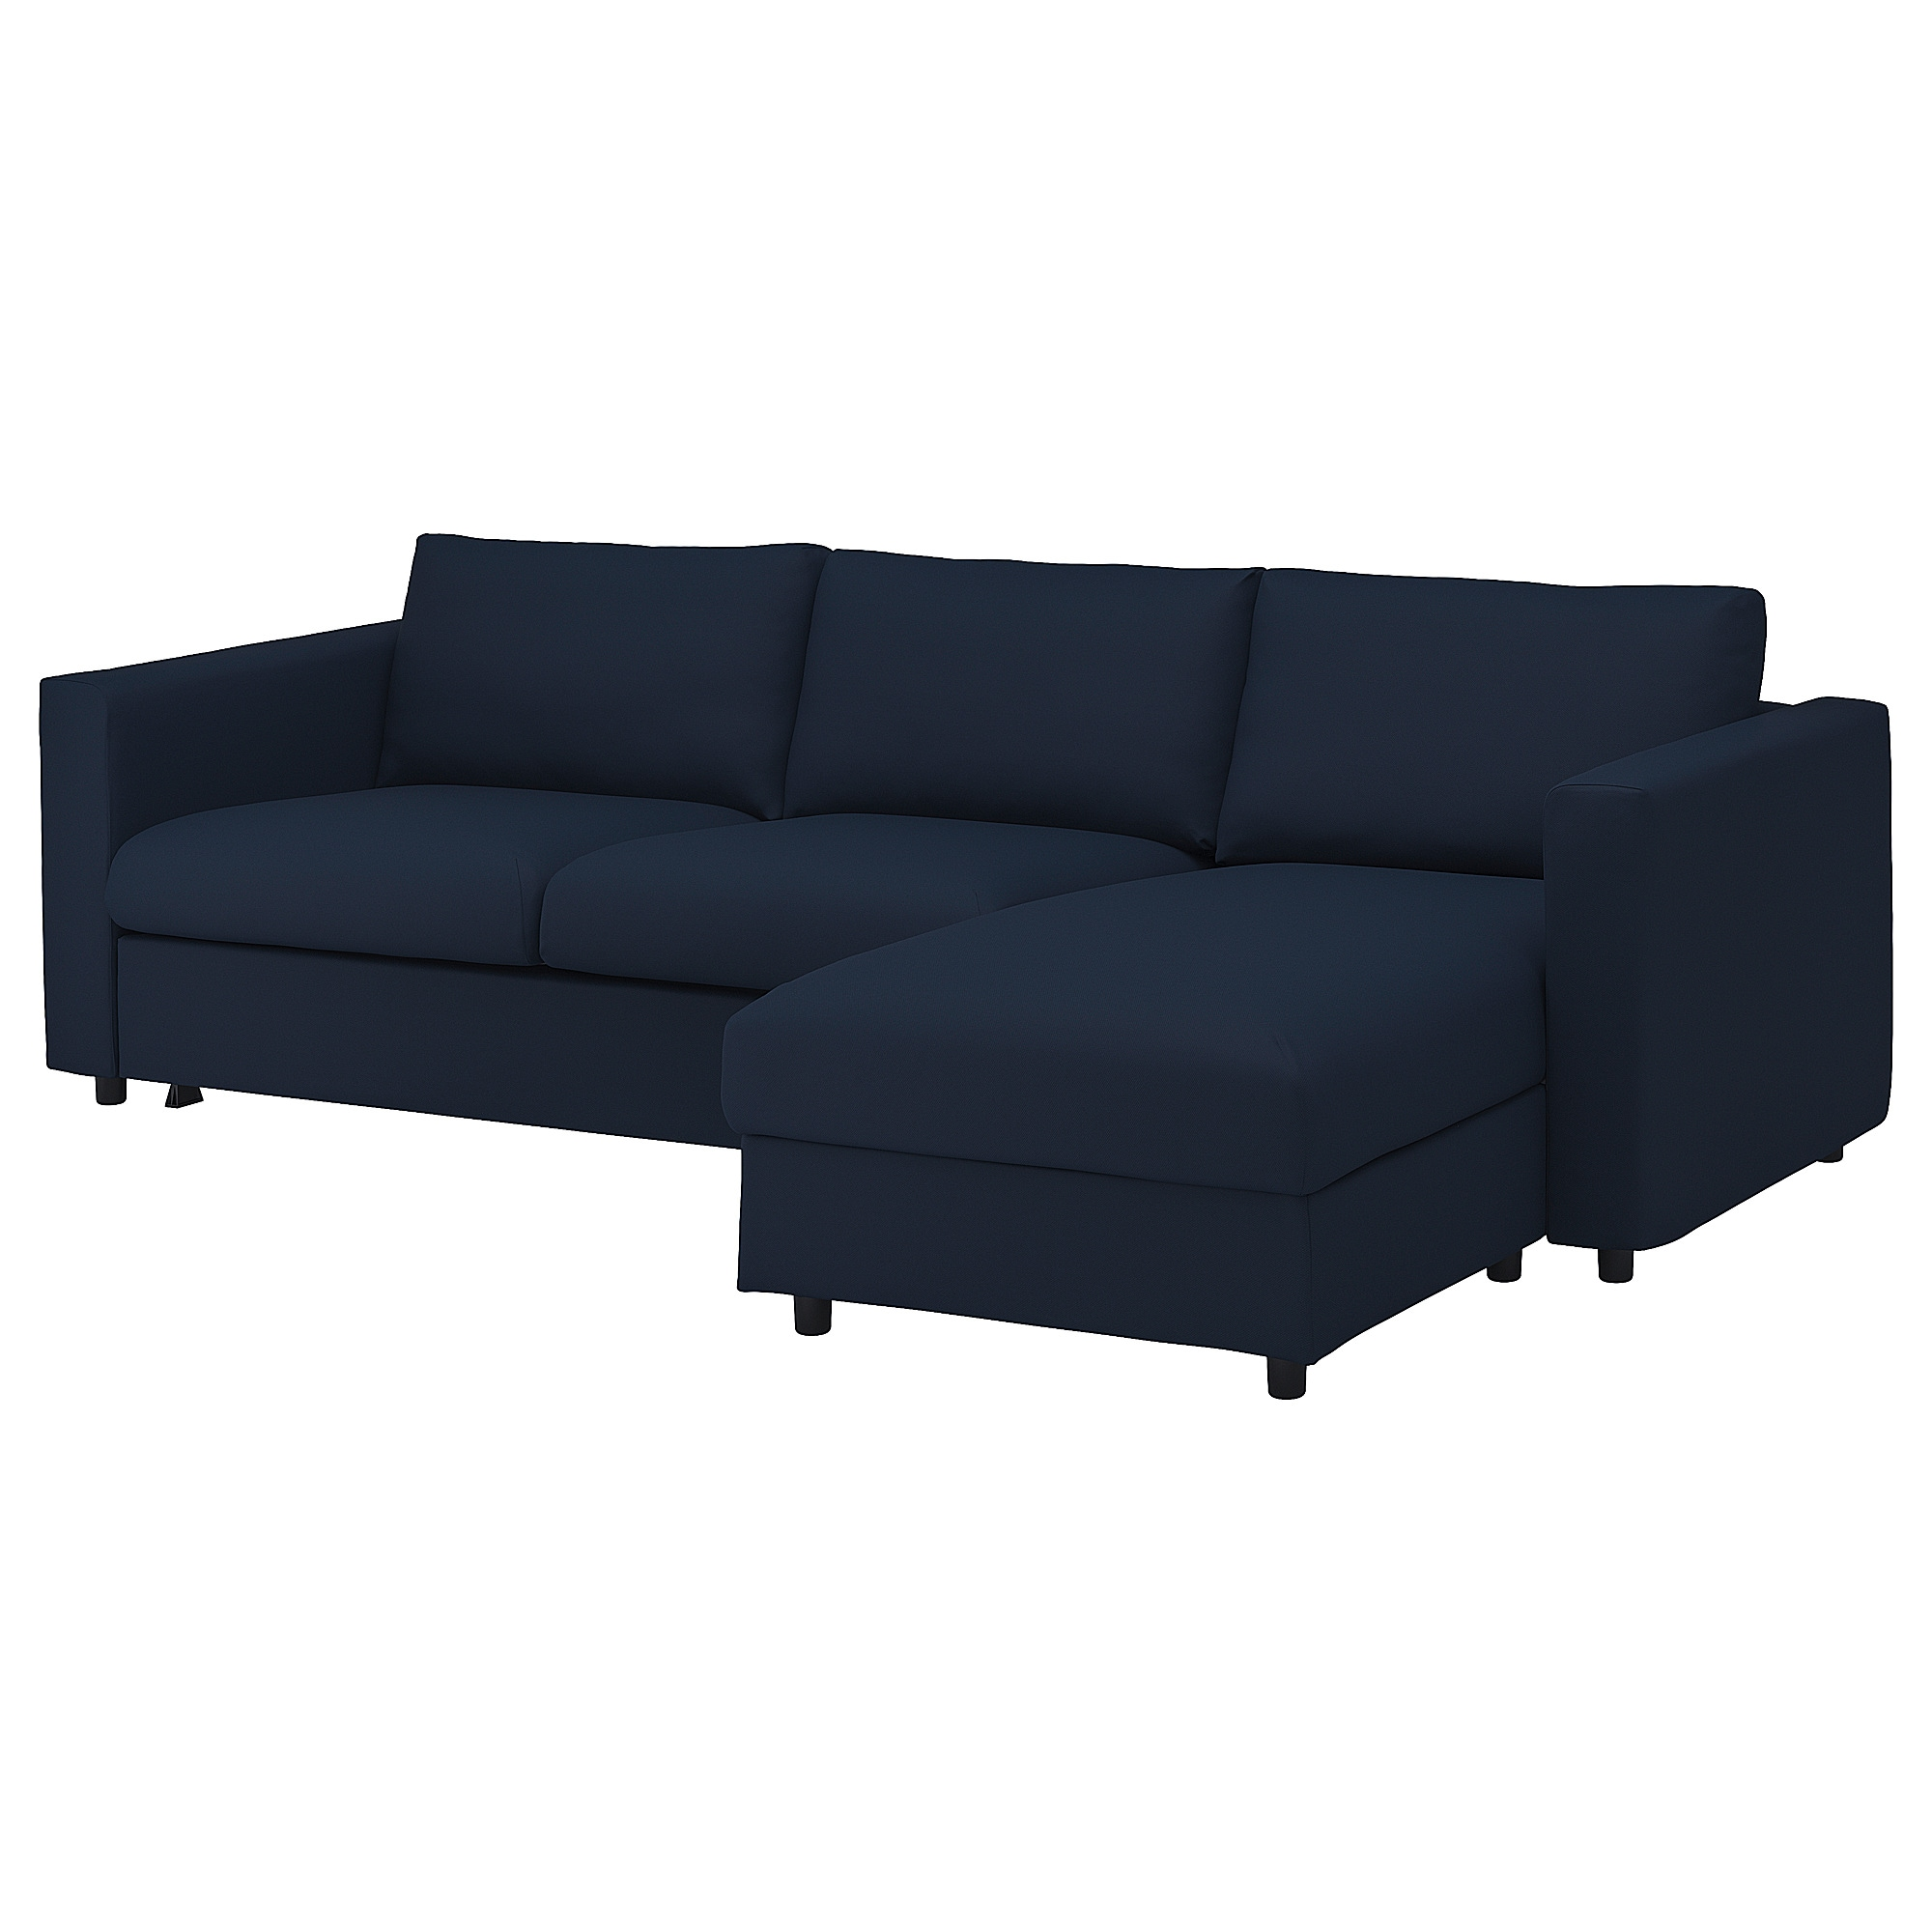 Cover For 3 Seat Sofa Bed Vimle With Chaise Longue Gräsbo Black Blue